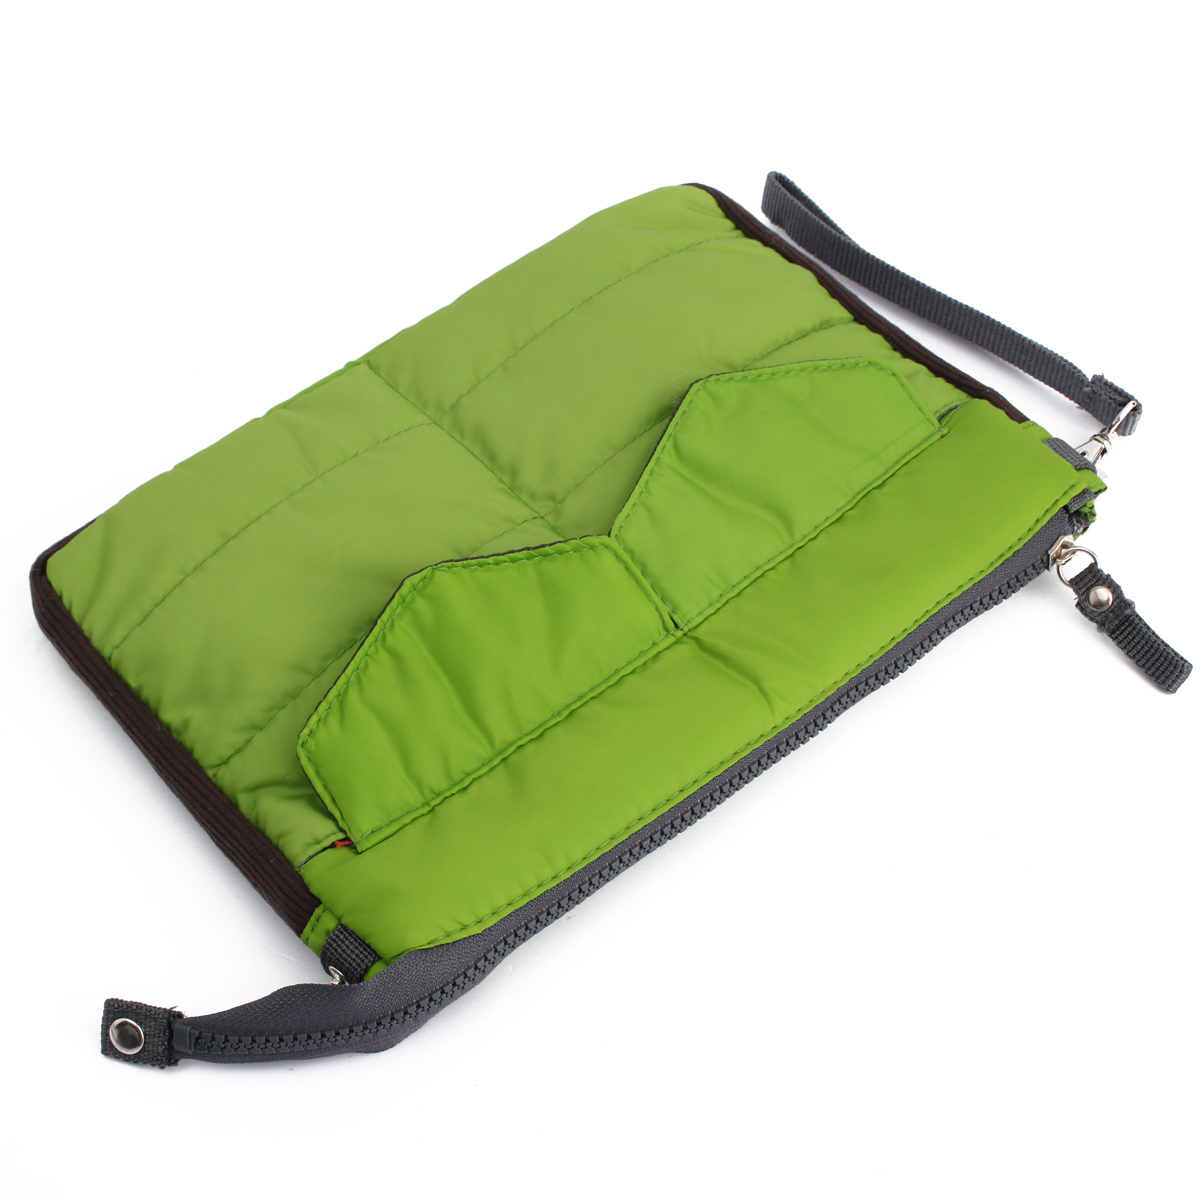 Squishy Laptop Cases : Soft Netbook Laptop Sleeve Case Bag Pouch Cover For i Pad 1/2/3/4 /MINI /Air NEW eBay